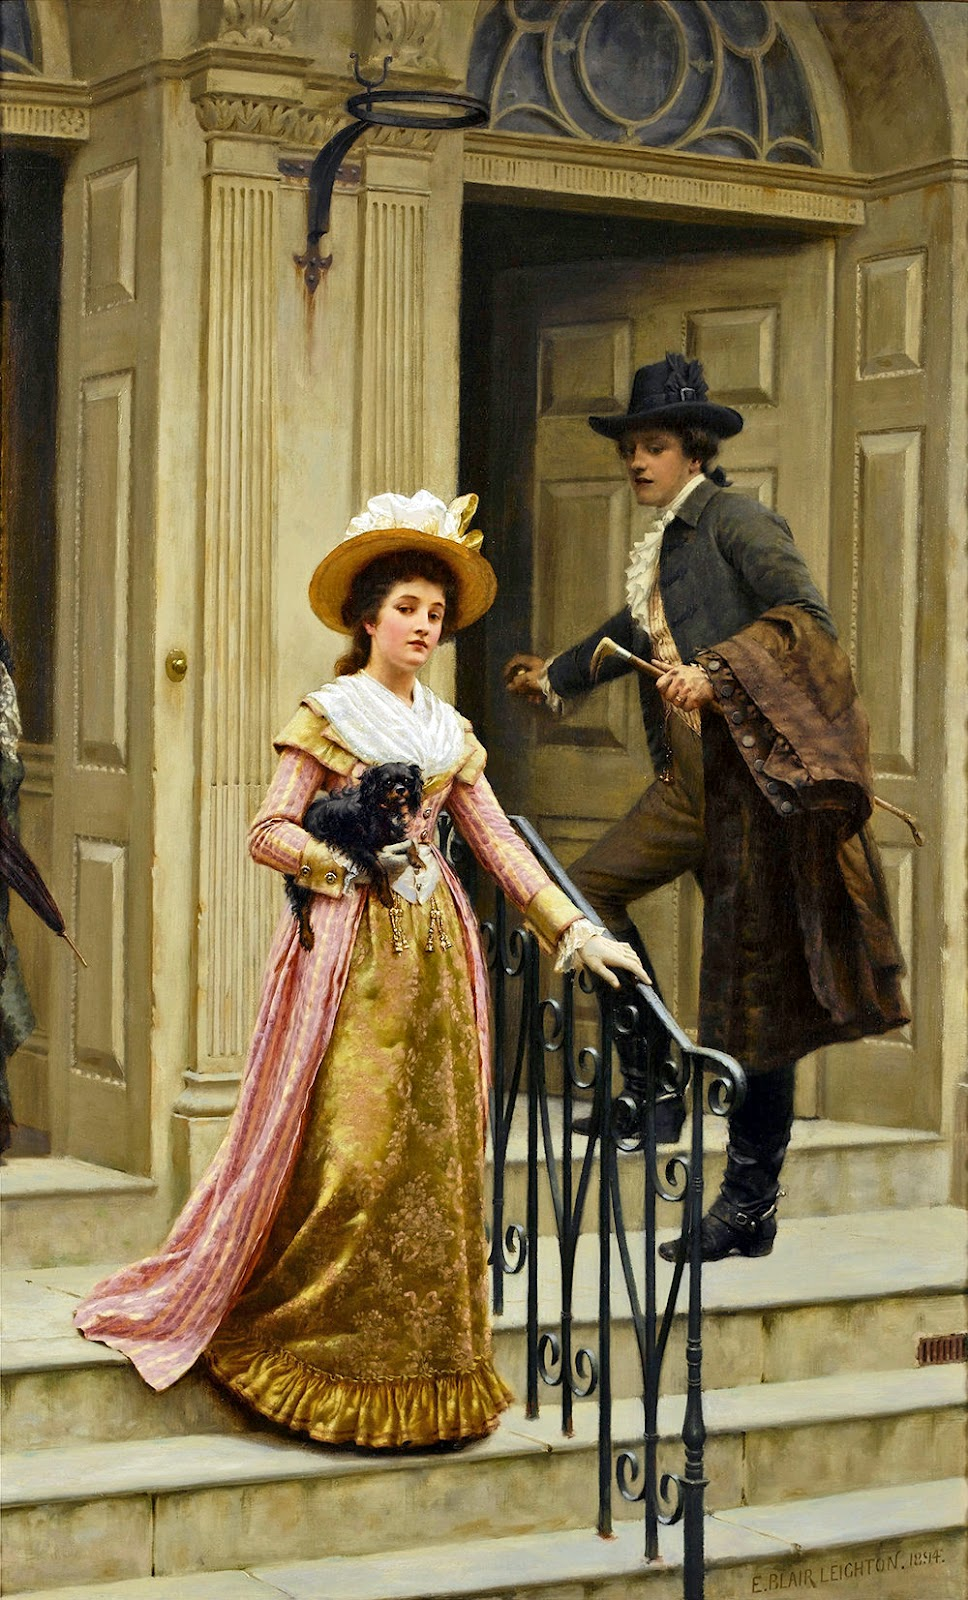 Edmund Blair Leighton, Our Next-Door Neighbor